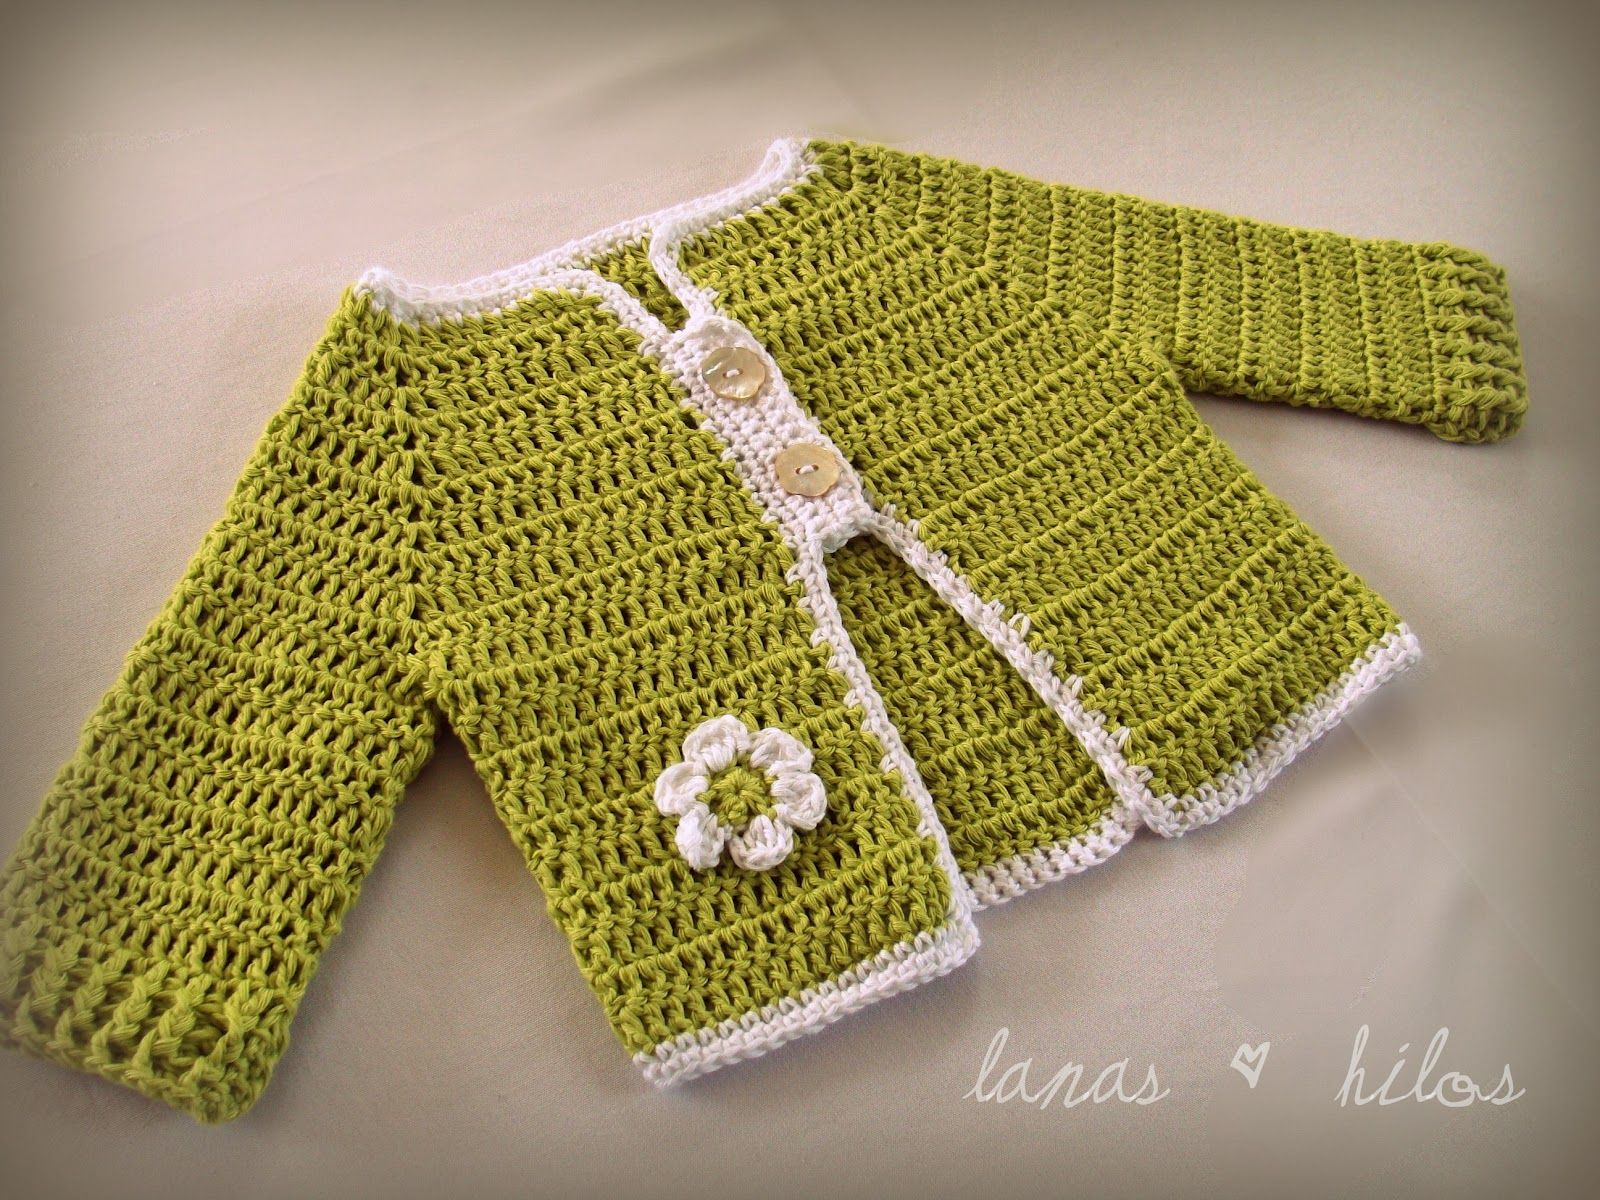 Lanas hilos 3 baby girl cardis childrenbaby crochet and knit 3 cardigans para nias how many crochet baby sweaters have i made truly i have lost count and here i made six more 3 for girls and bankloansurffo Images